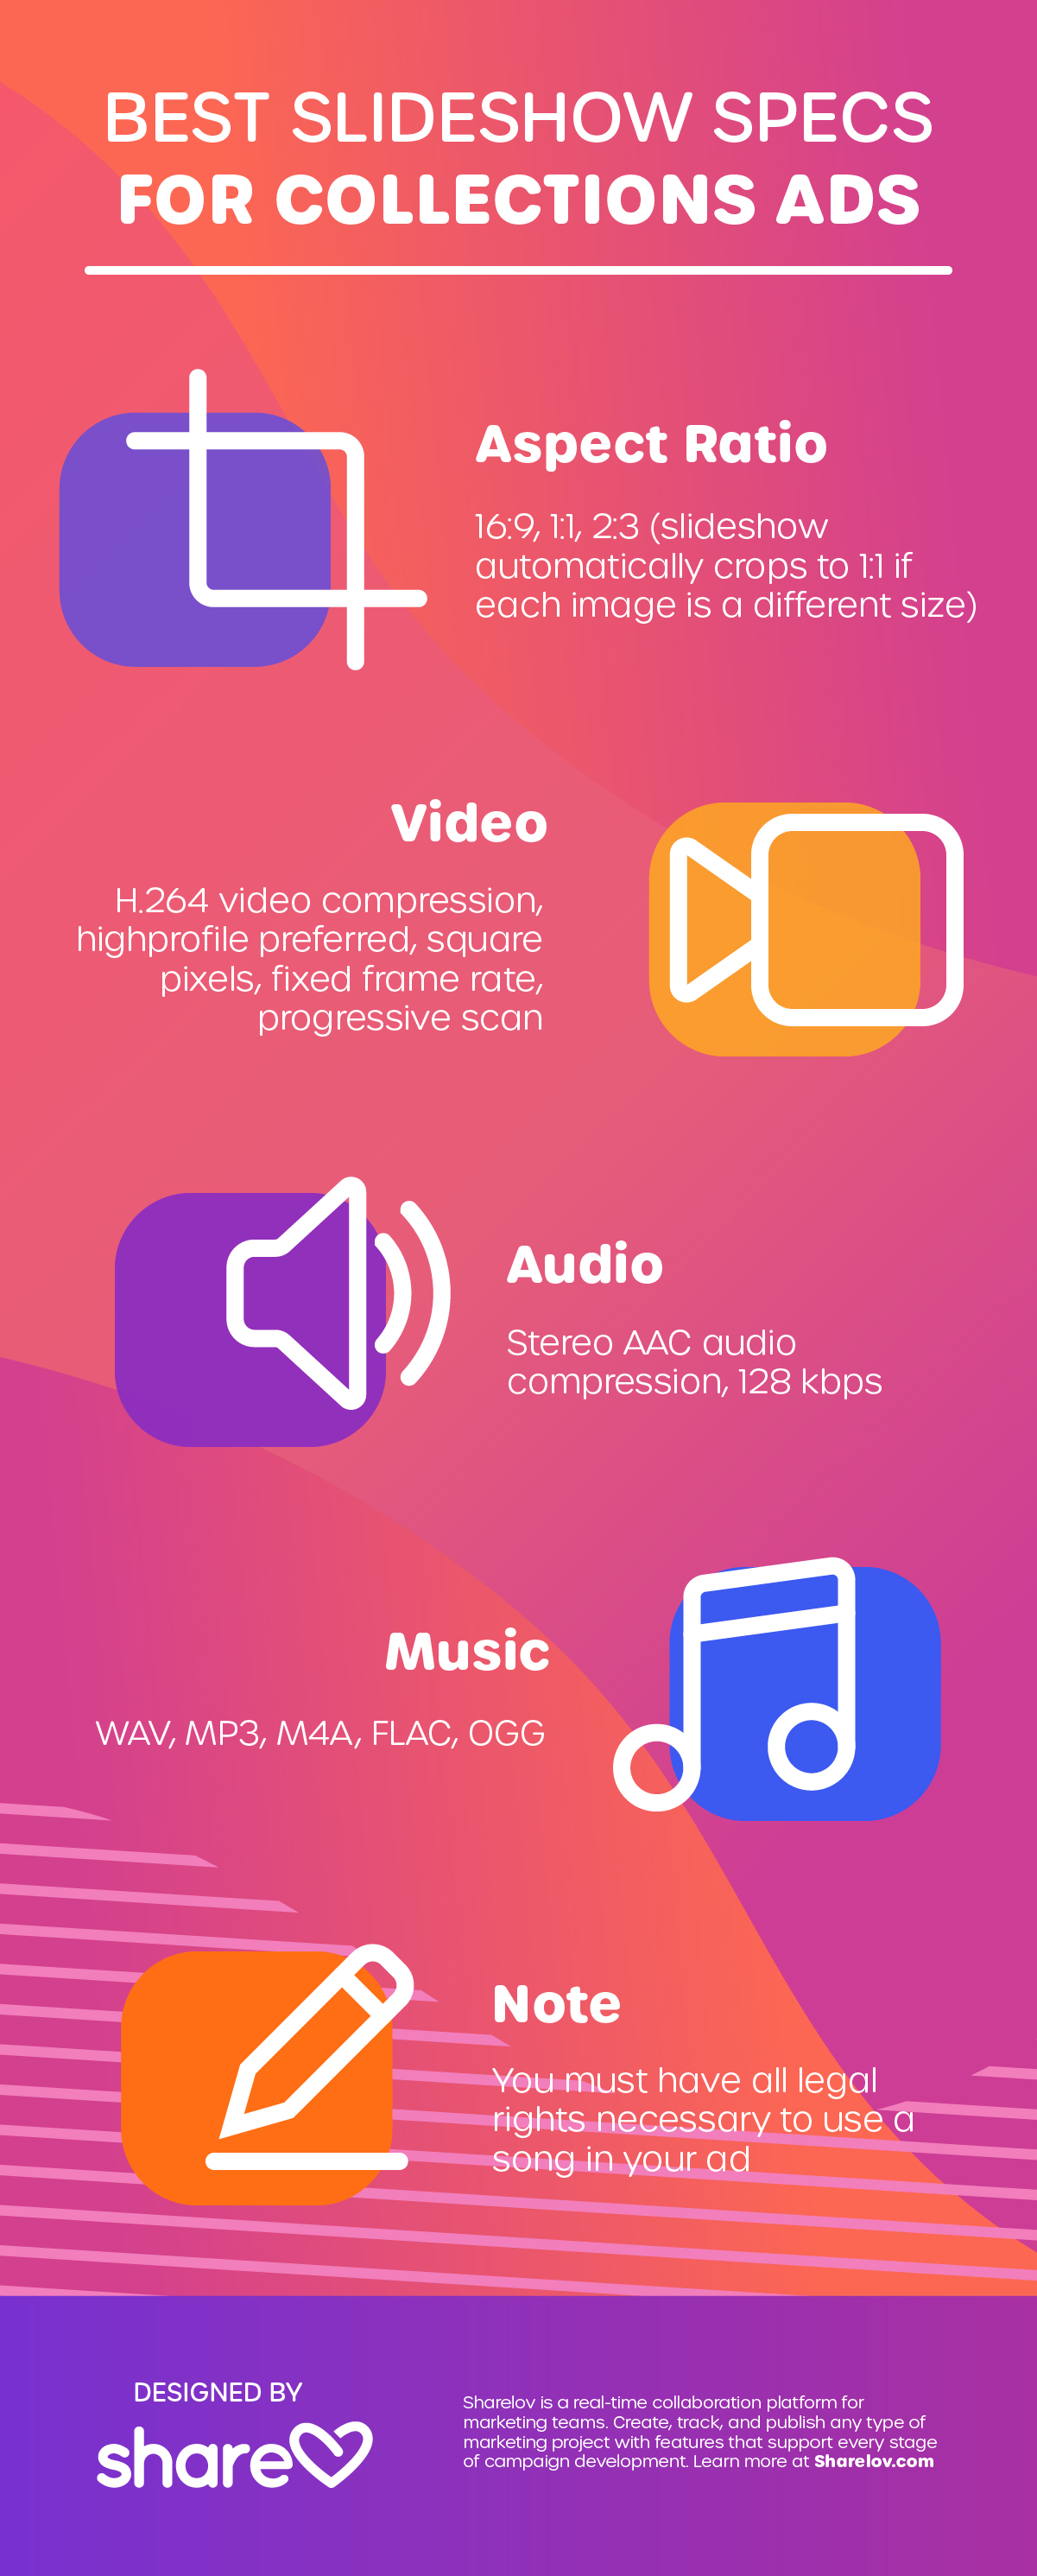 Best Slideshow Specs for Collection Ads infographic